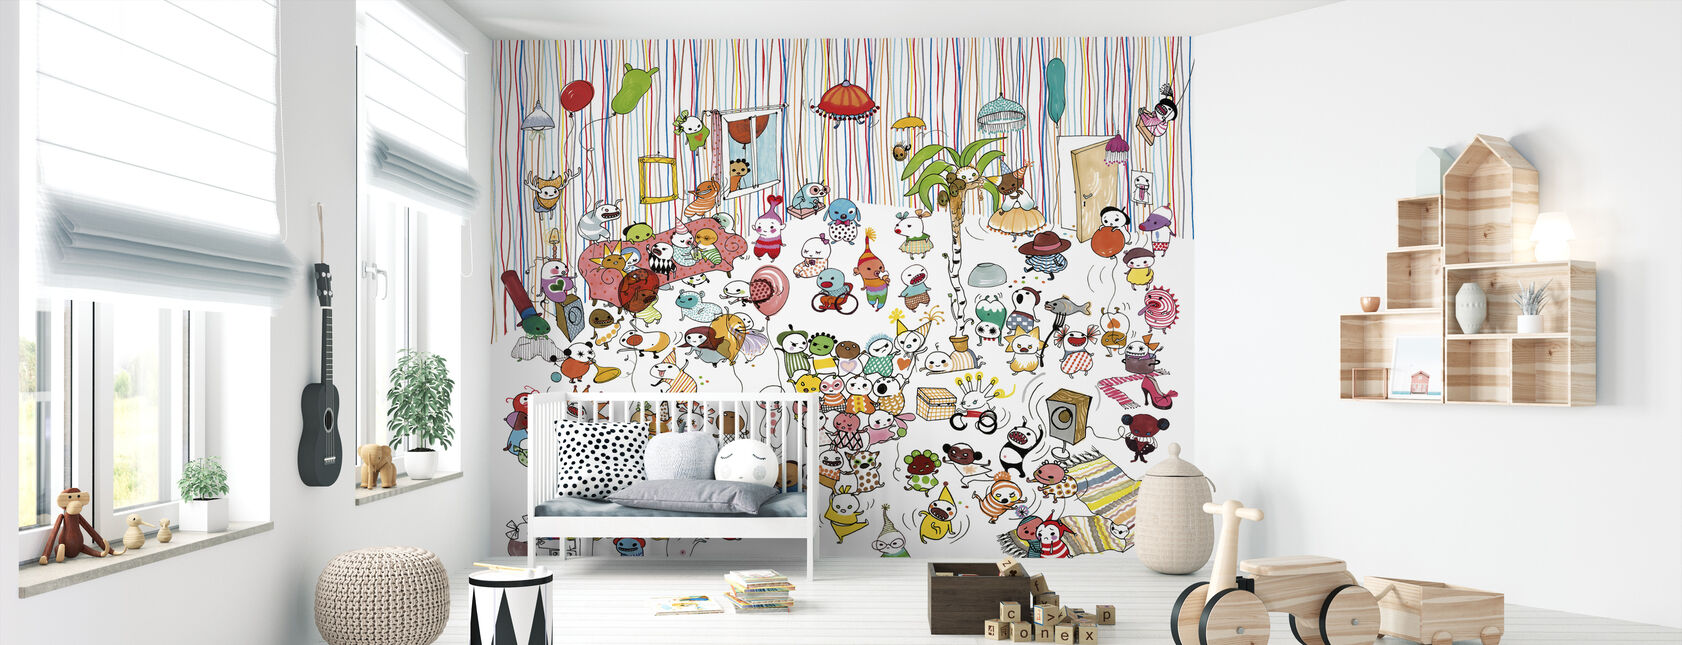 Motley Party 3 - Wallpaper - Nursery